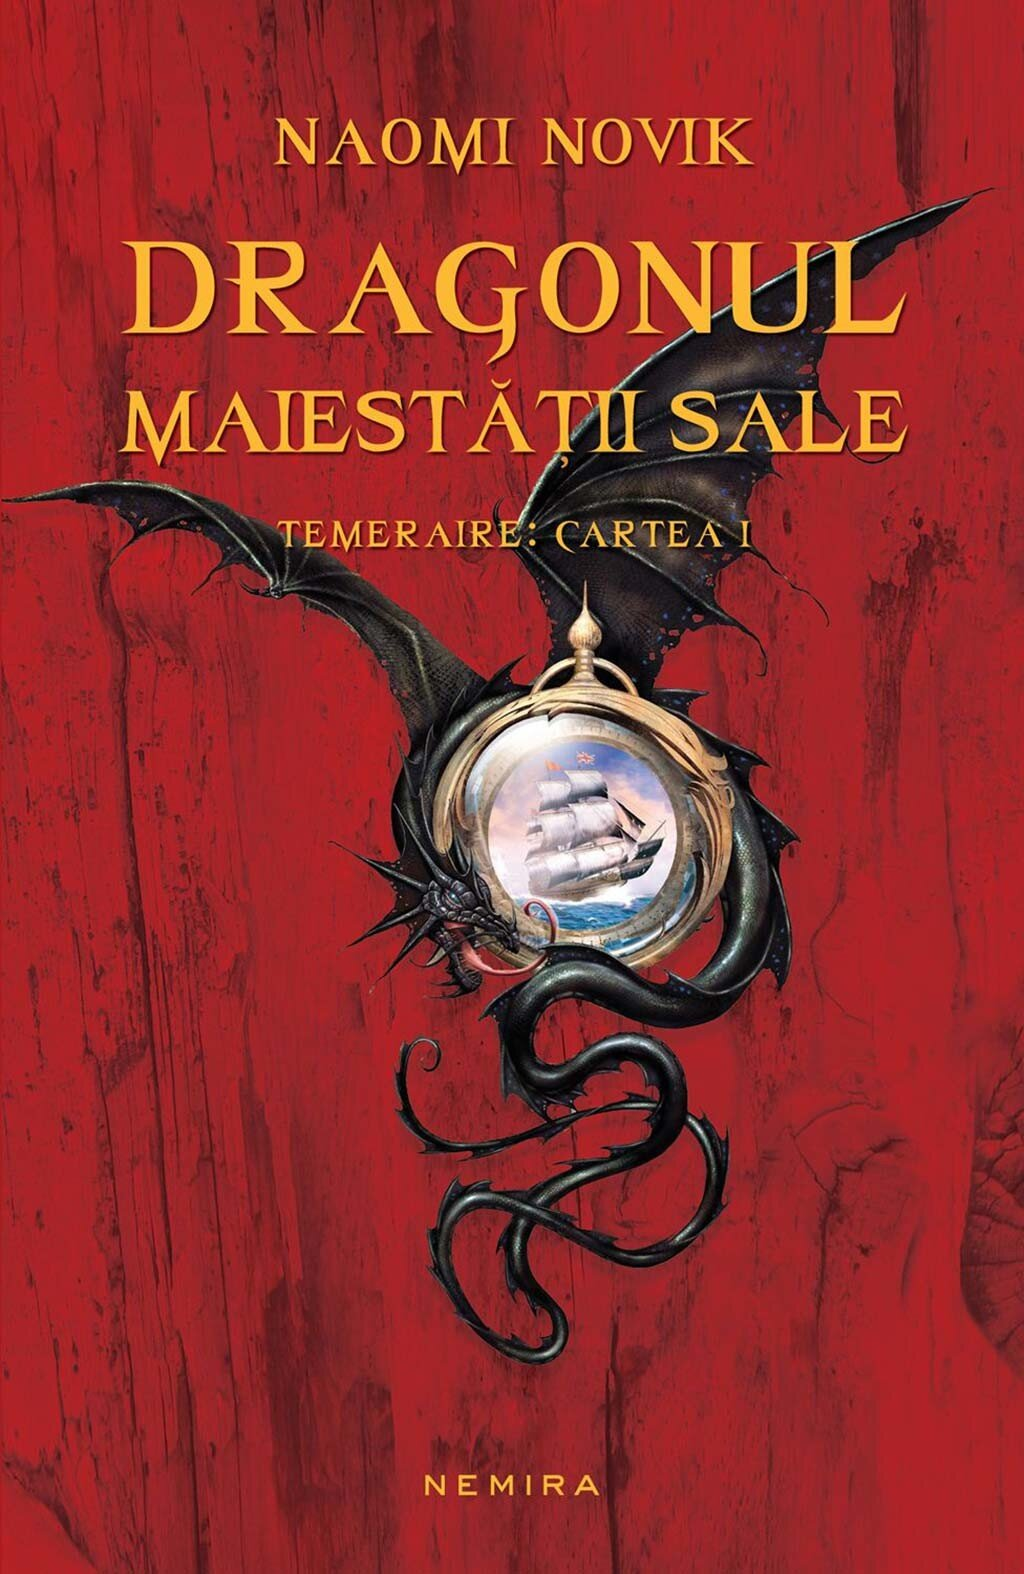 Dragonul Maiestatii Sale. Temeraire: Cartea I PDF (Download eBook)